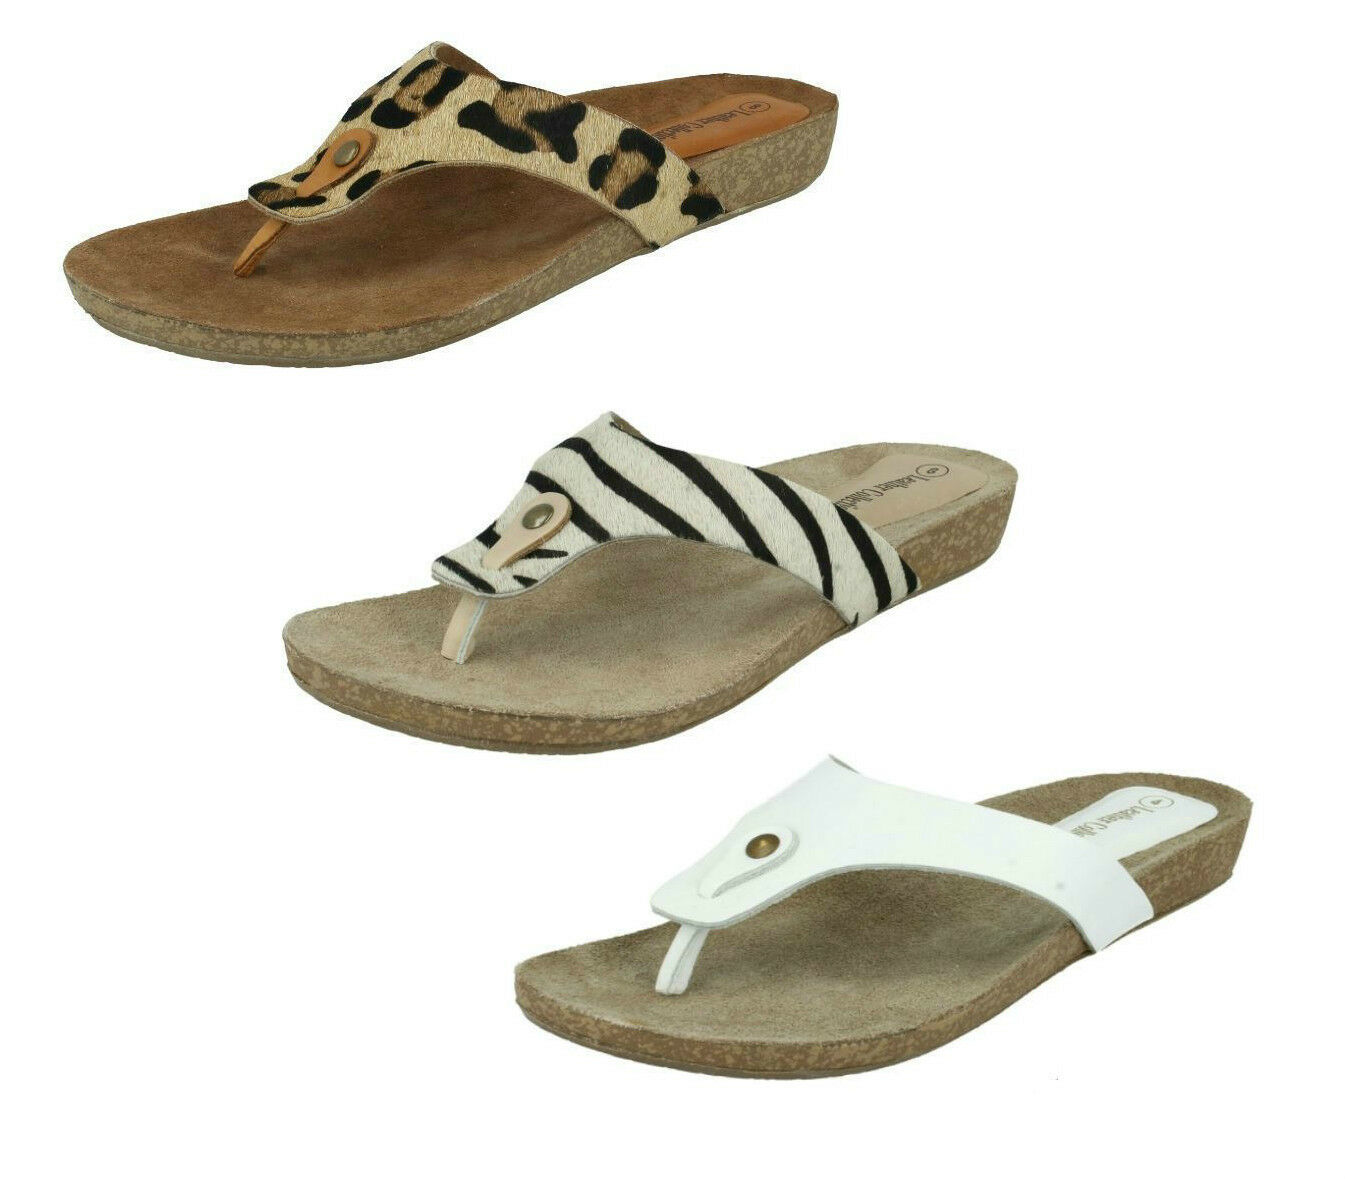 Ladies sandals F10500 leather toe post sandals Ladies by LEATHER COLLECTION Sale Now .00 1d154a